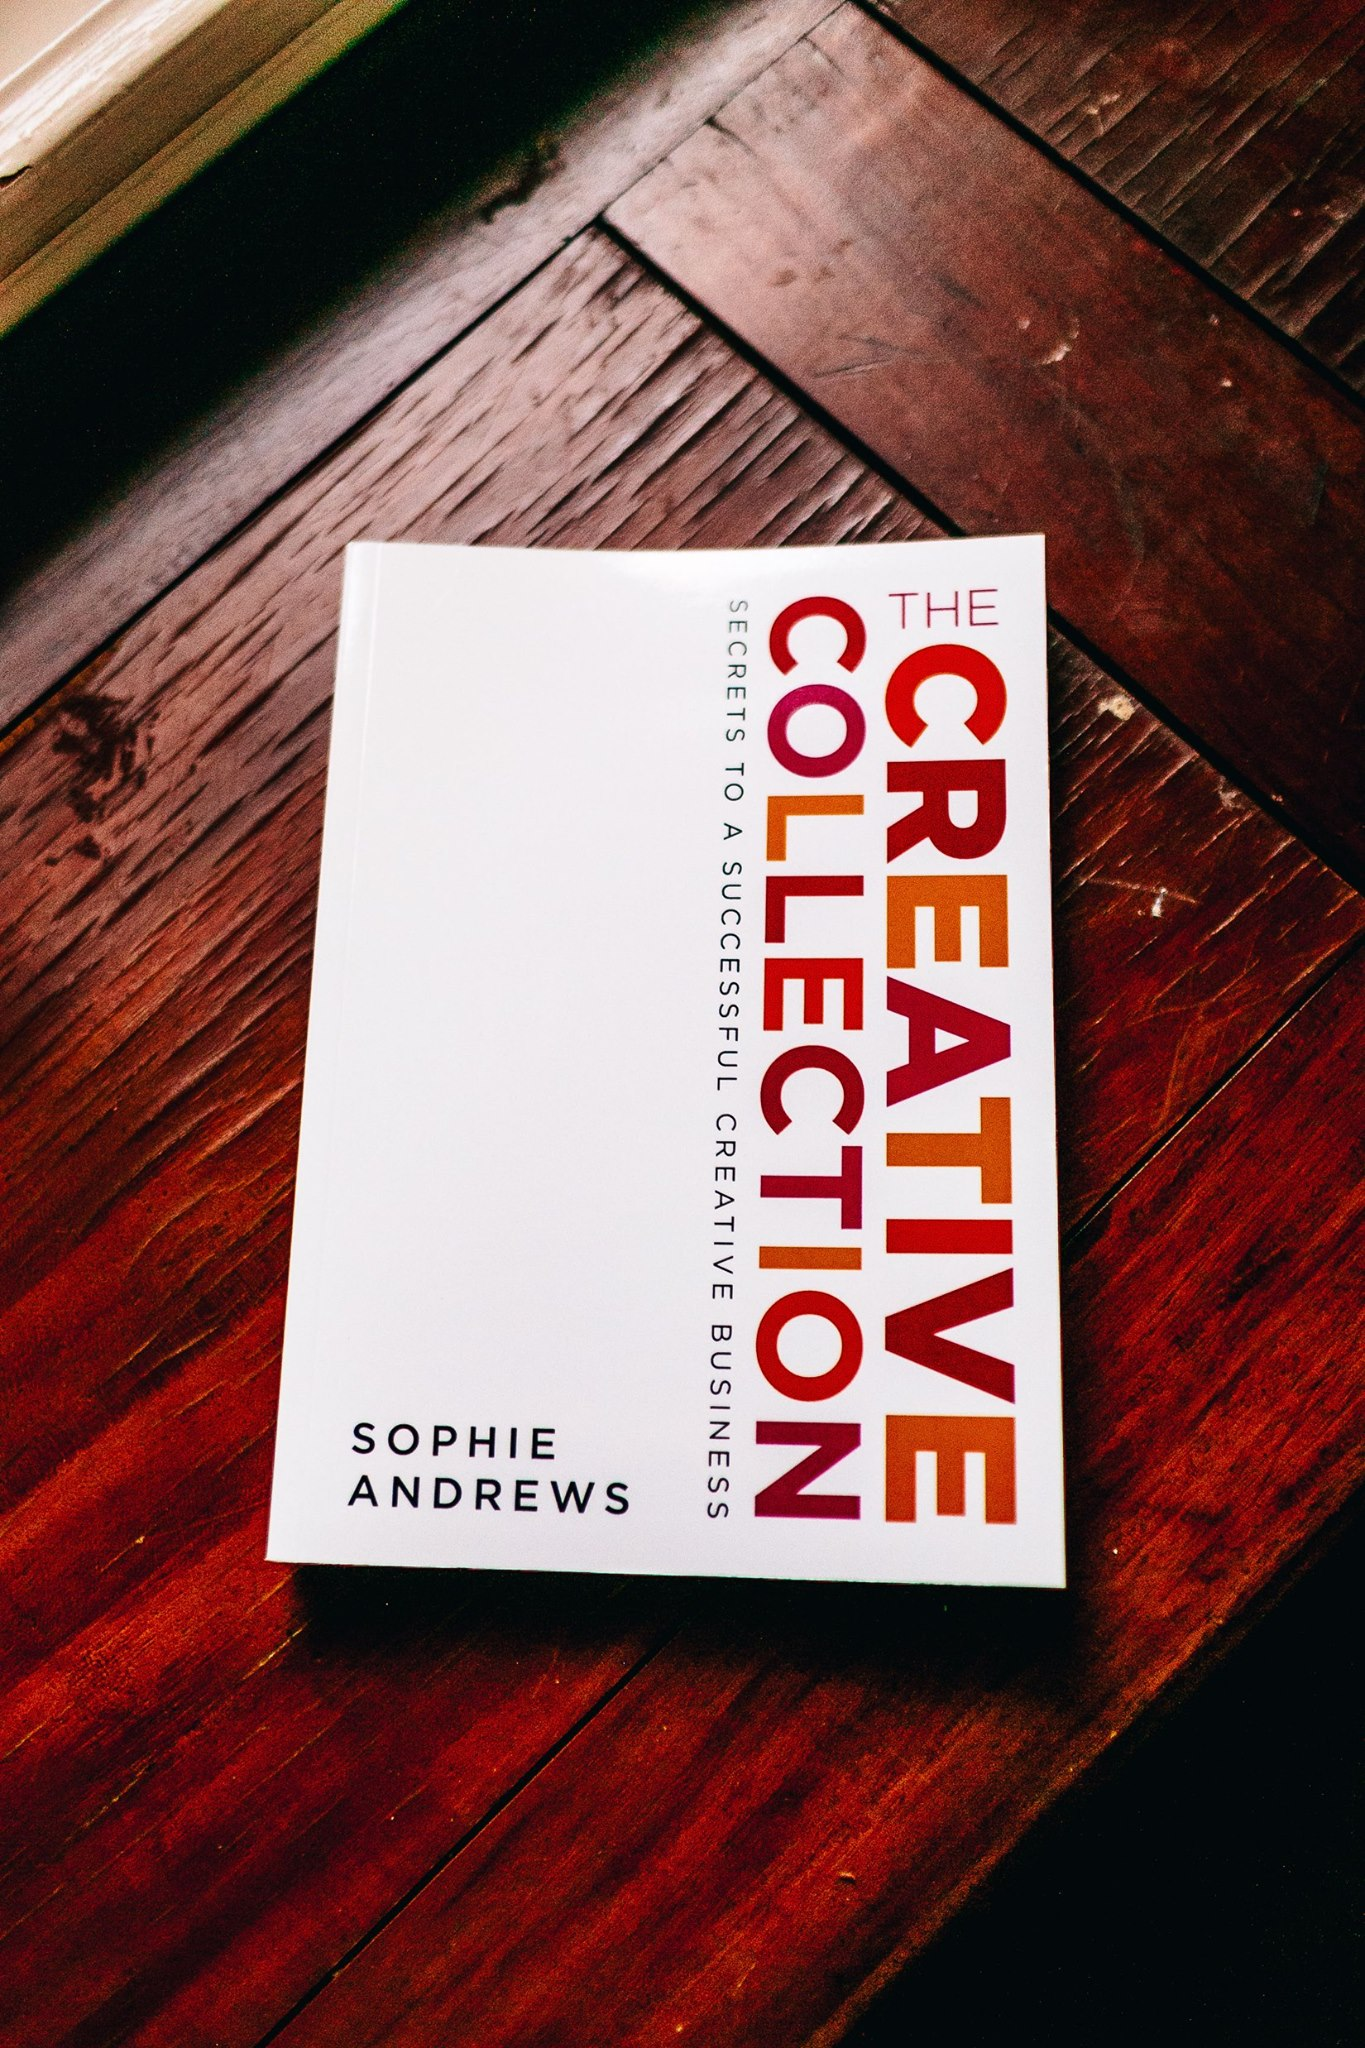 One of the excellent book giveaways, 'The Creative Collection. Secrets to a Successful Creatve Business' by Sophie Andrews, founder of The Accounts Studio